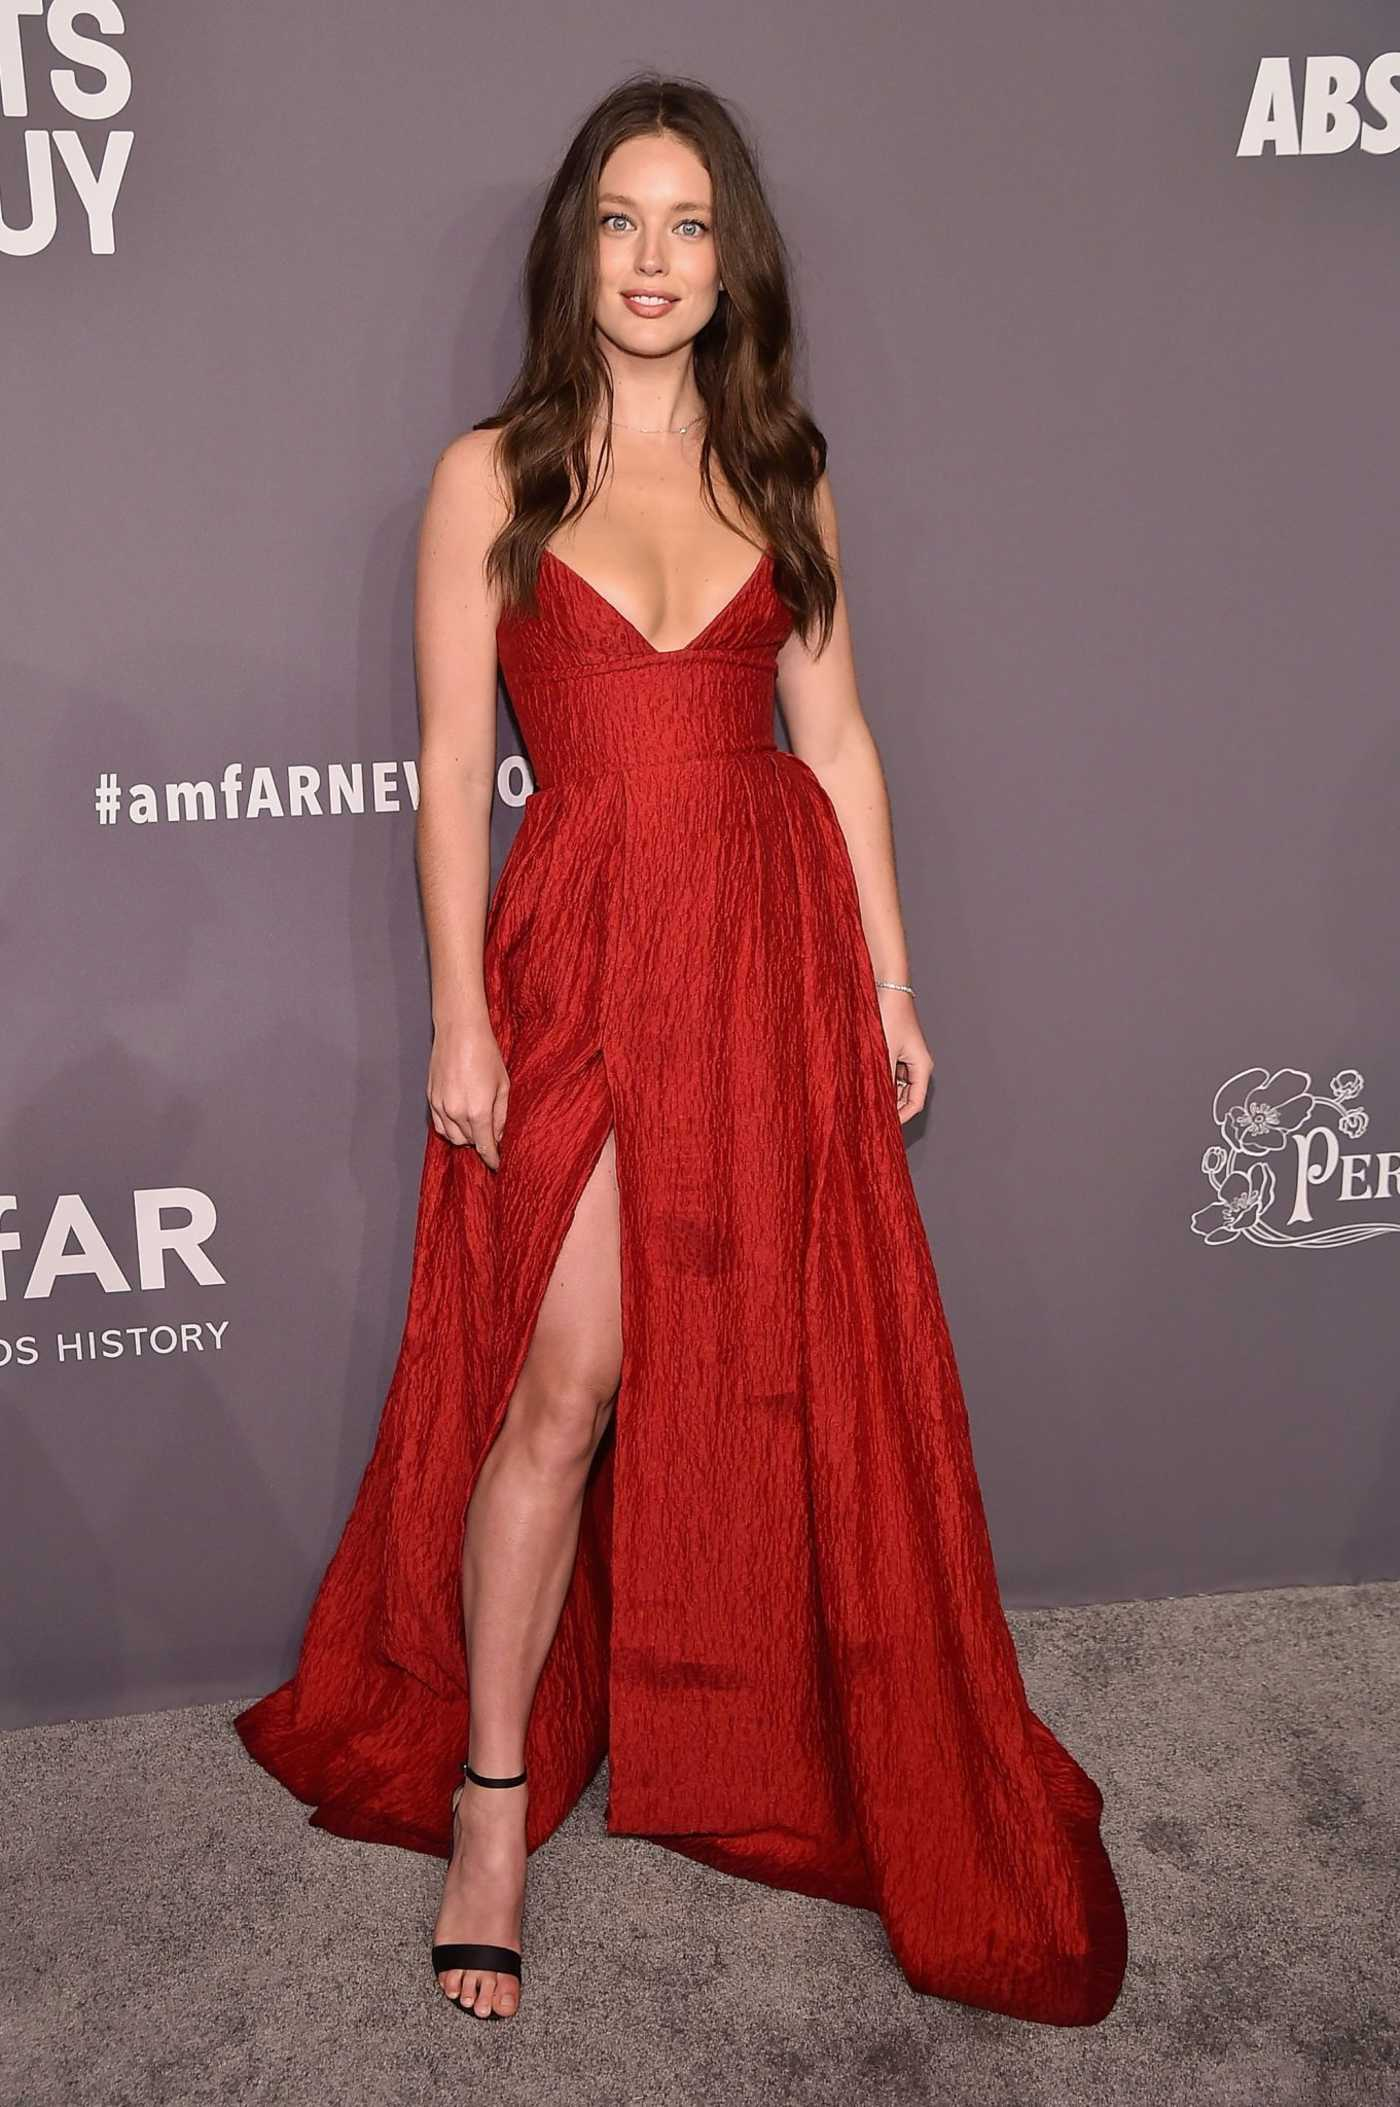 Emily DiDonato Attends 2019 amfAR New York Gala at Cipriani Wall Street in New York City 02/06/2019